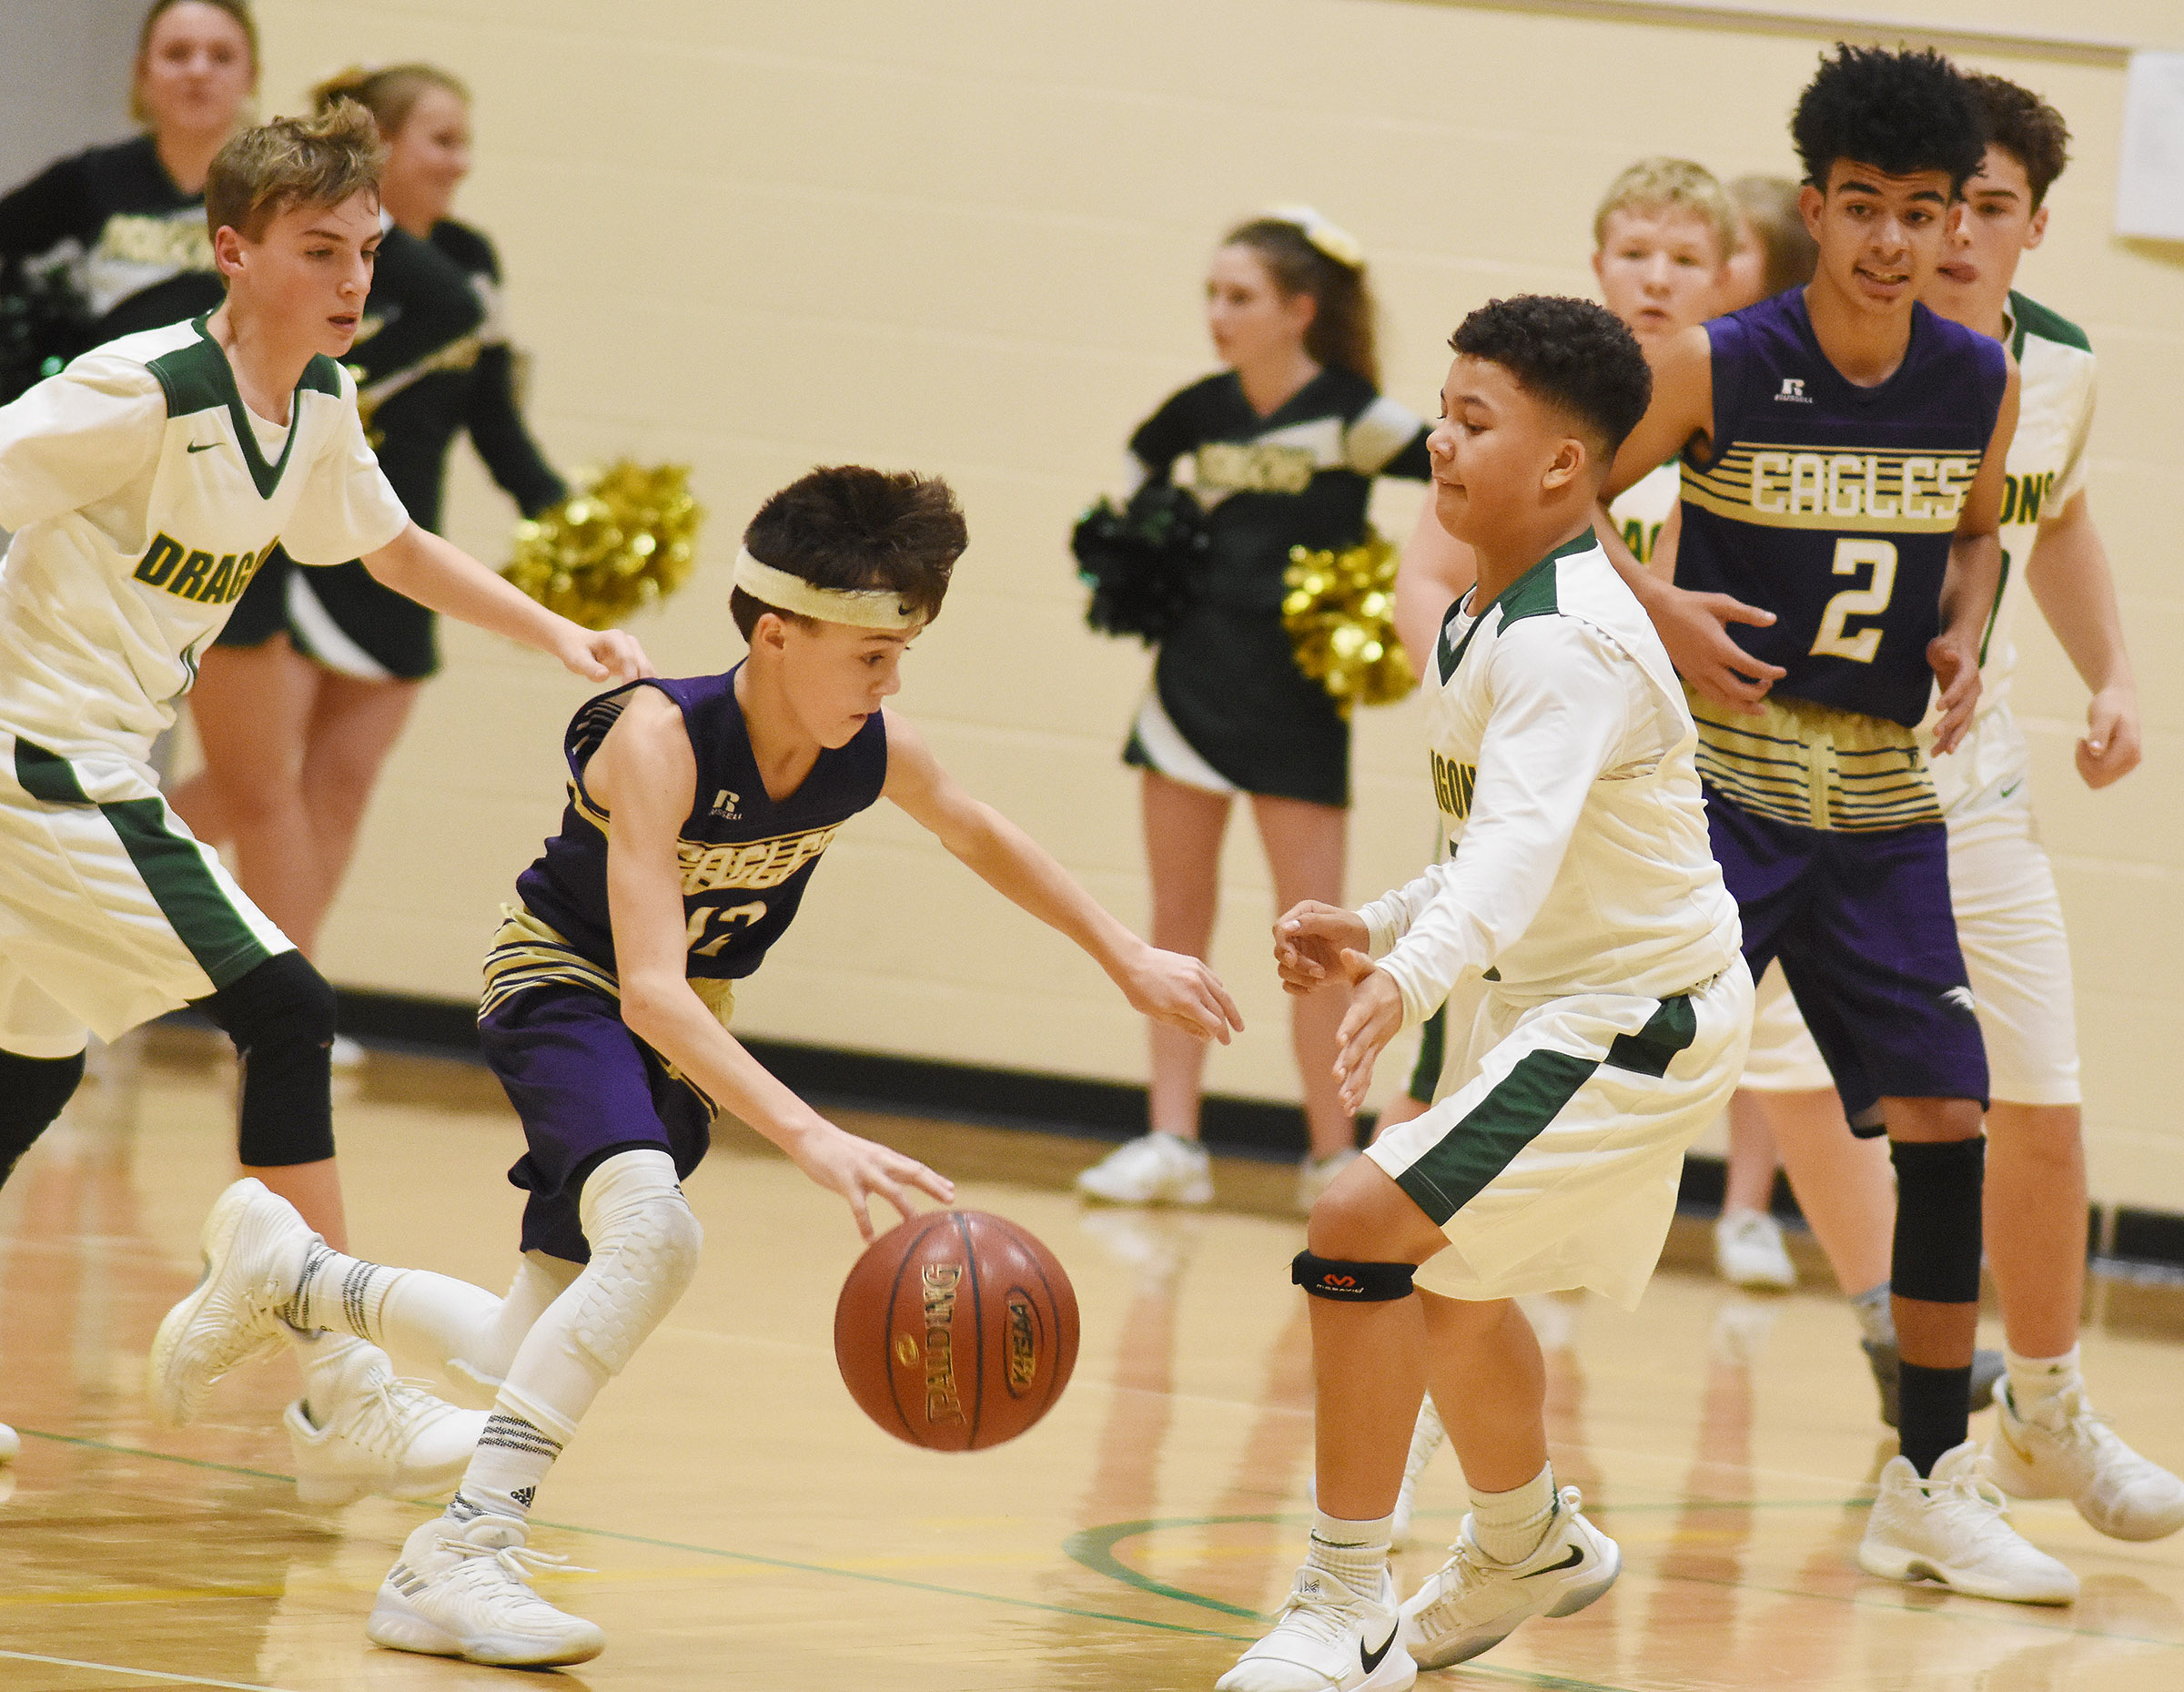 CMS seventh-grader Chase Hord drives the ball as eighth-grader Adrien Smith blocks.